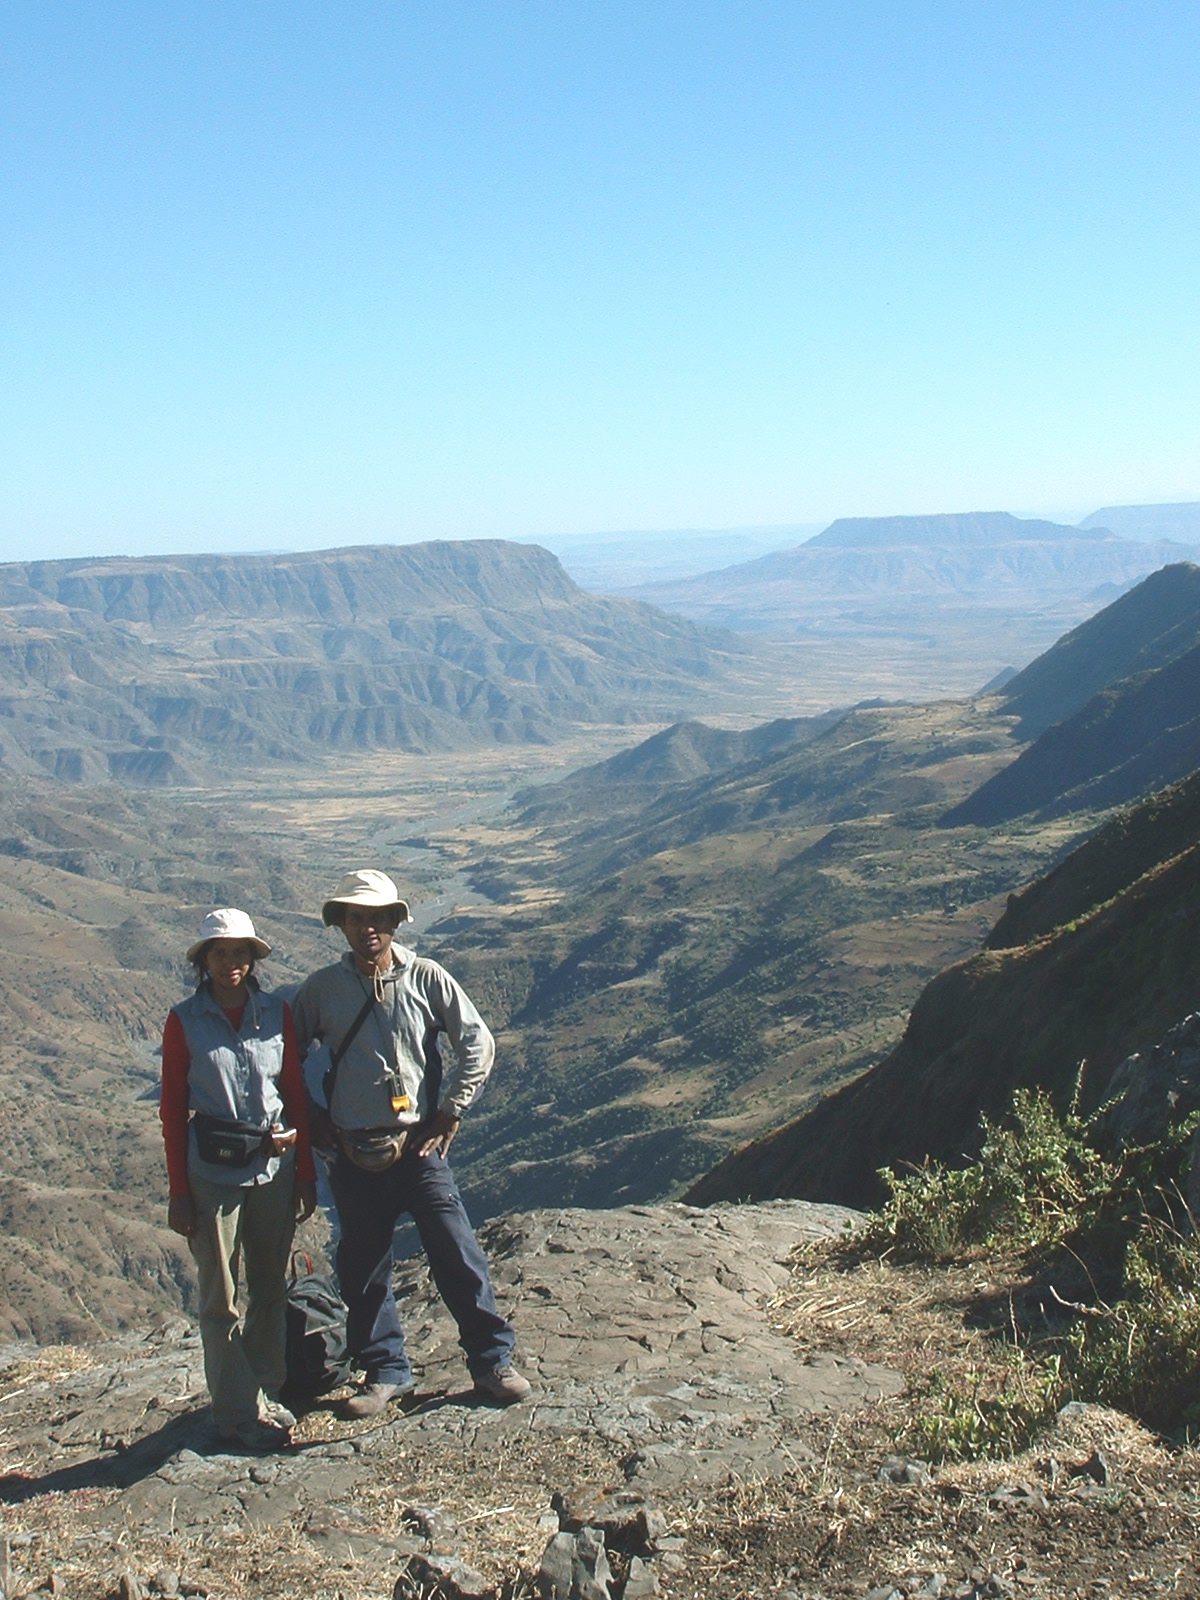 Nahid and Royhan Gani, geologists at the University of Utah's Energy and Geoscience Institute, stand on the Ethiopian Plateau near the Gorge of the Nile, which was carved by Africa's Blue Nile River. The Ganis are studied the timing of the canyon's incision to learn more about how movements of Earth's crust are related to human evolution.